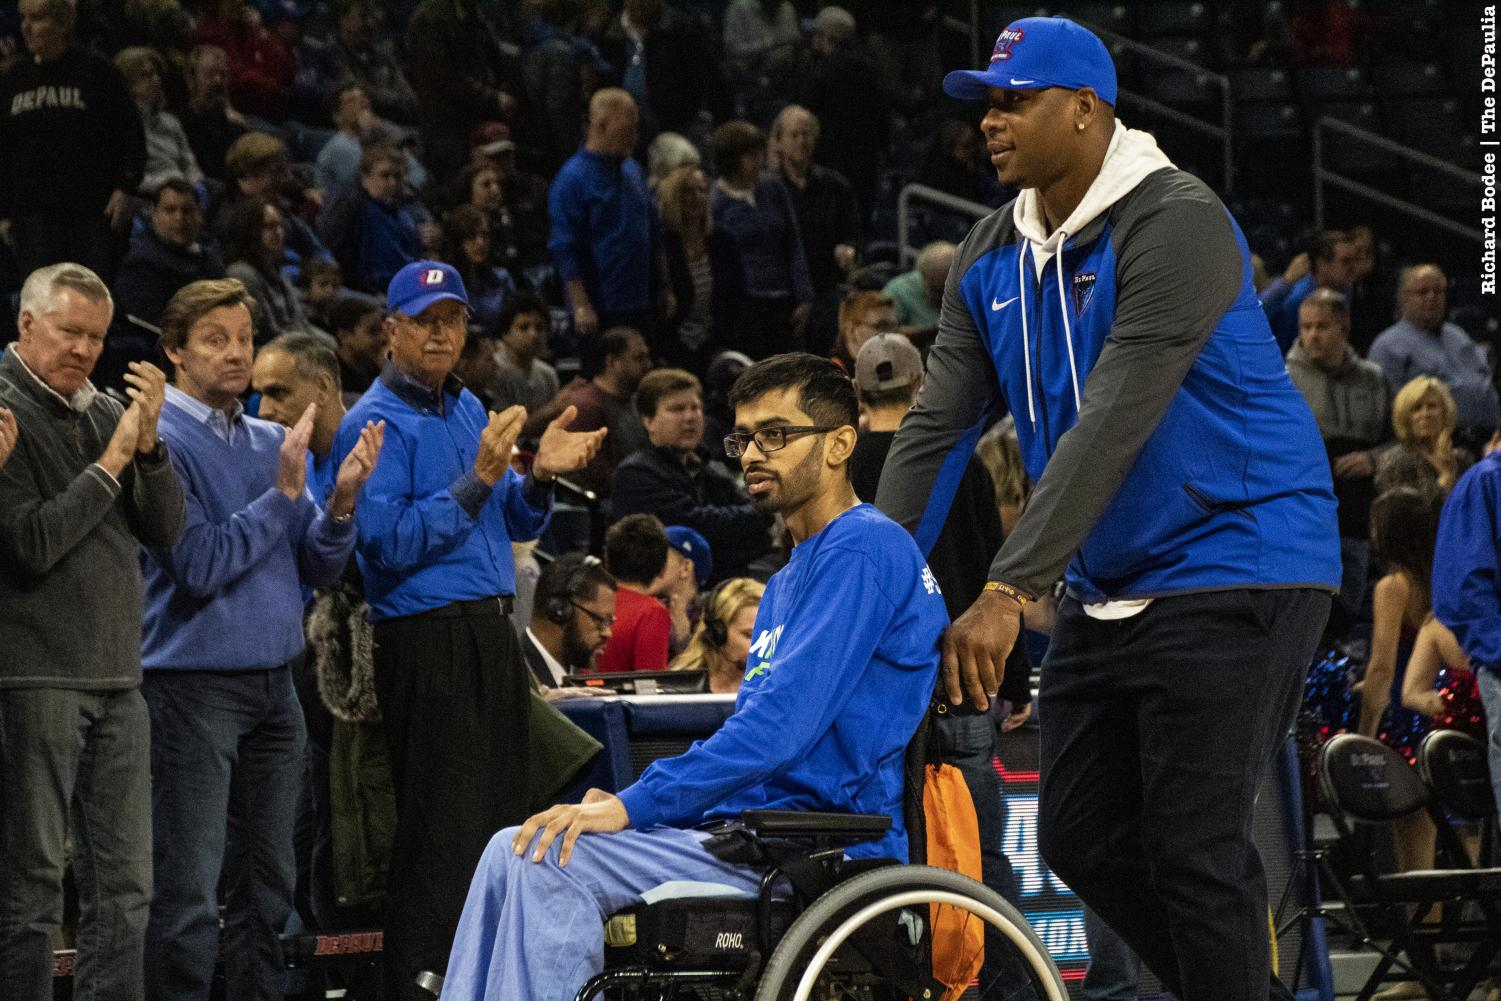 DePaul student manager Aameer Sahi, who is battling a malignant peripheral nerve sheath tumor, was at the game today. Richard Bodee I The DePaulia